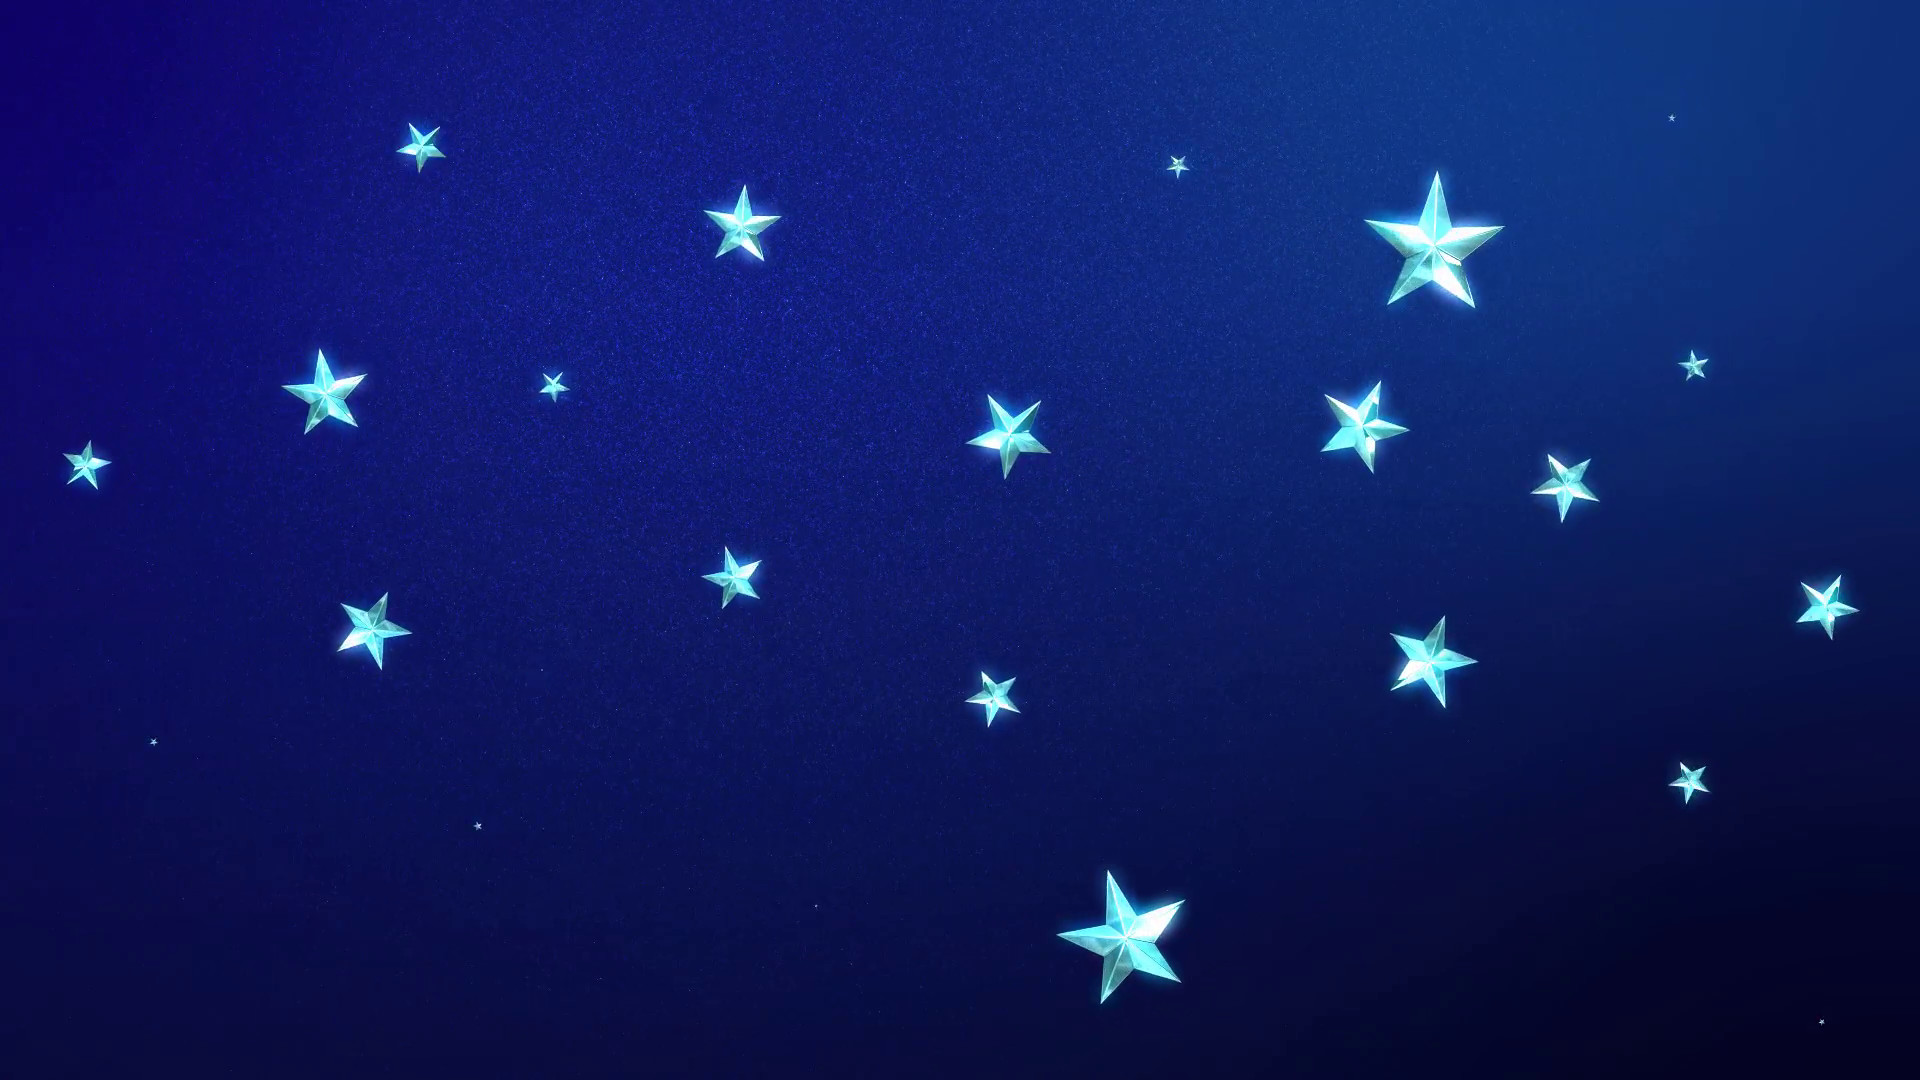 1920x1080 Looping Animation of Twinkling Stars on a Midnight Blue Background Motion  Background - Storyblocks Video